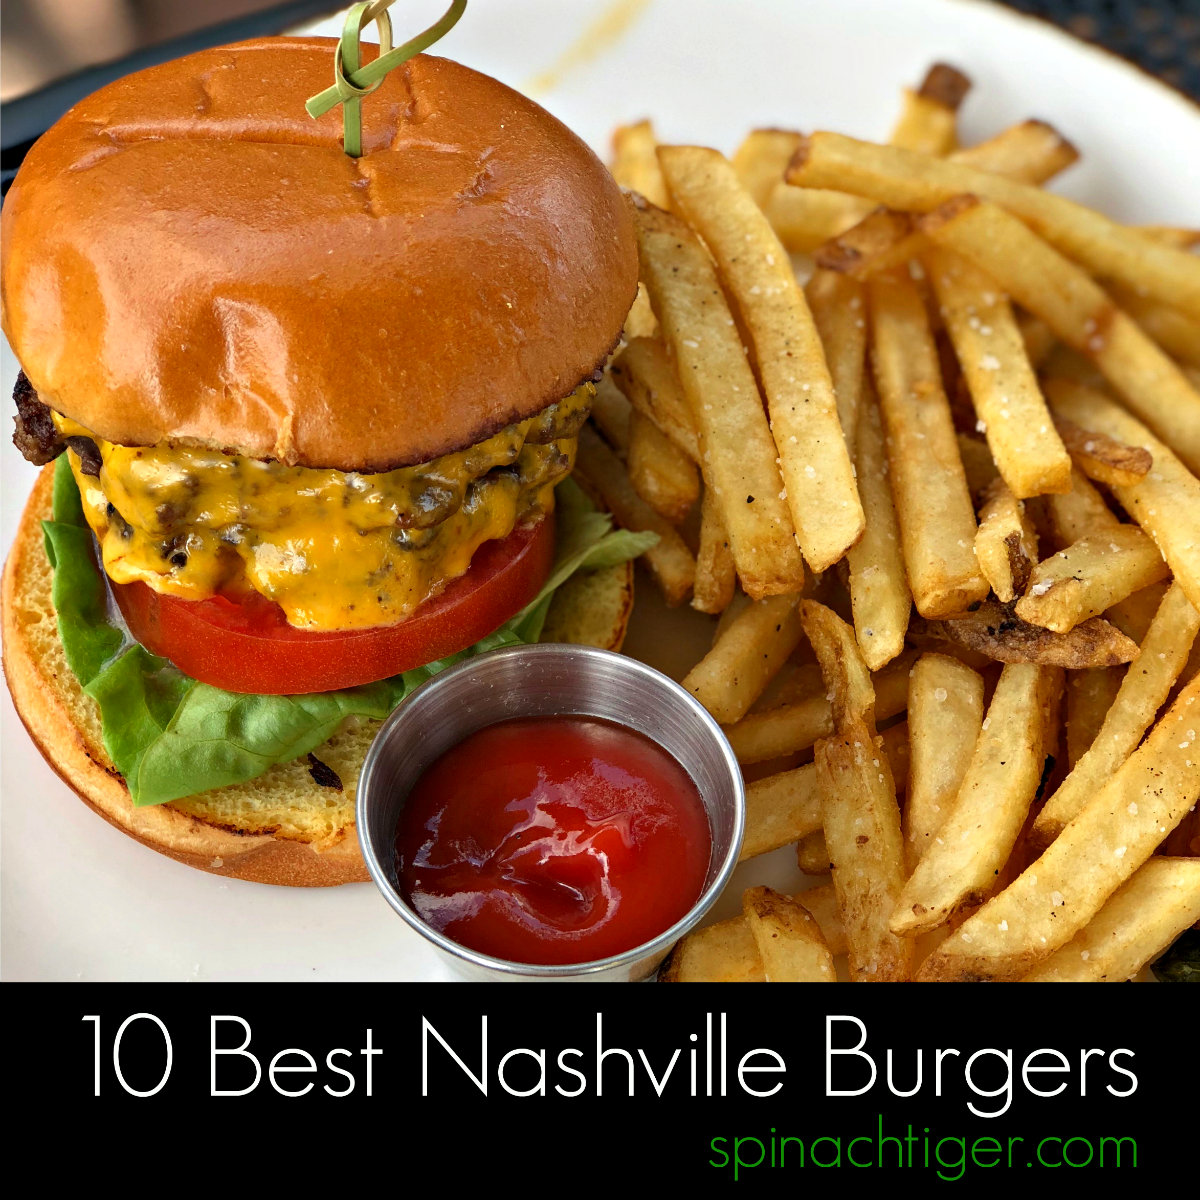 Nashville's Best Burgers from Spinach Tiger #nashville #restaurants #food #spinachtiger